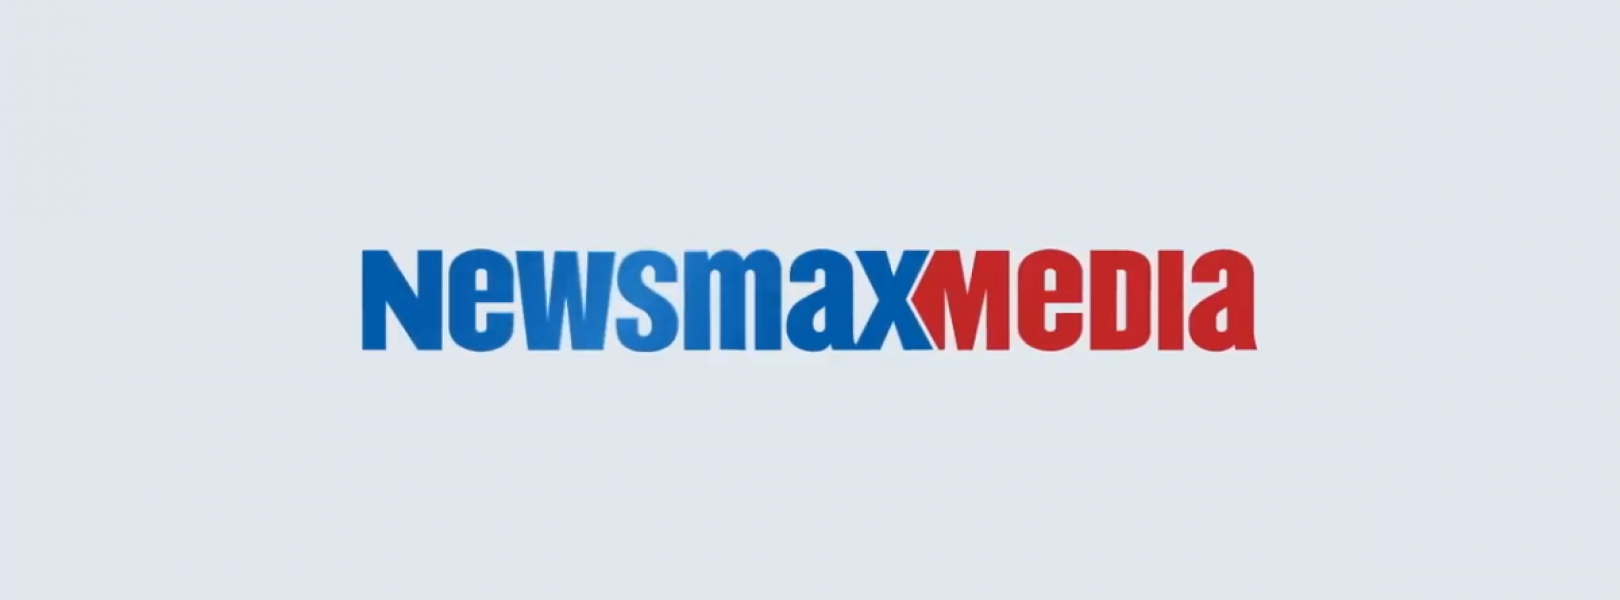 Newsmax Media logo